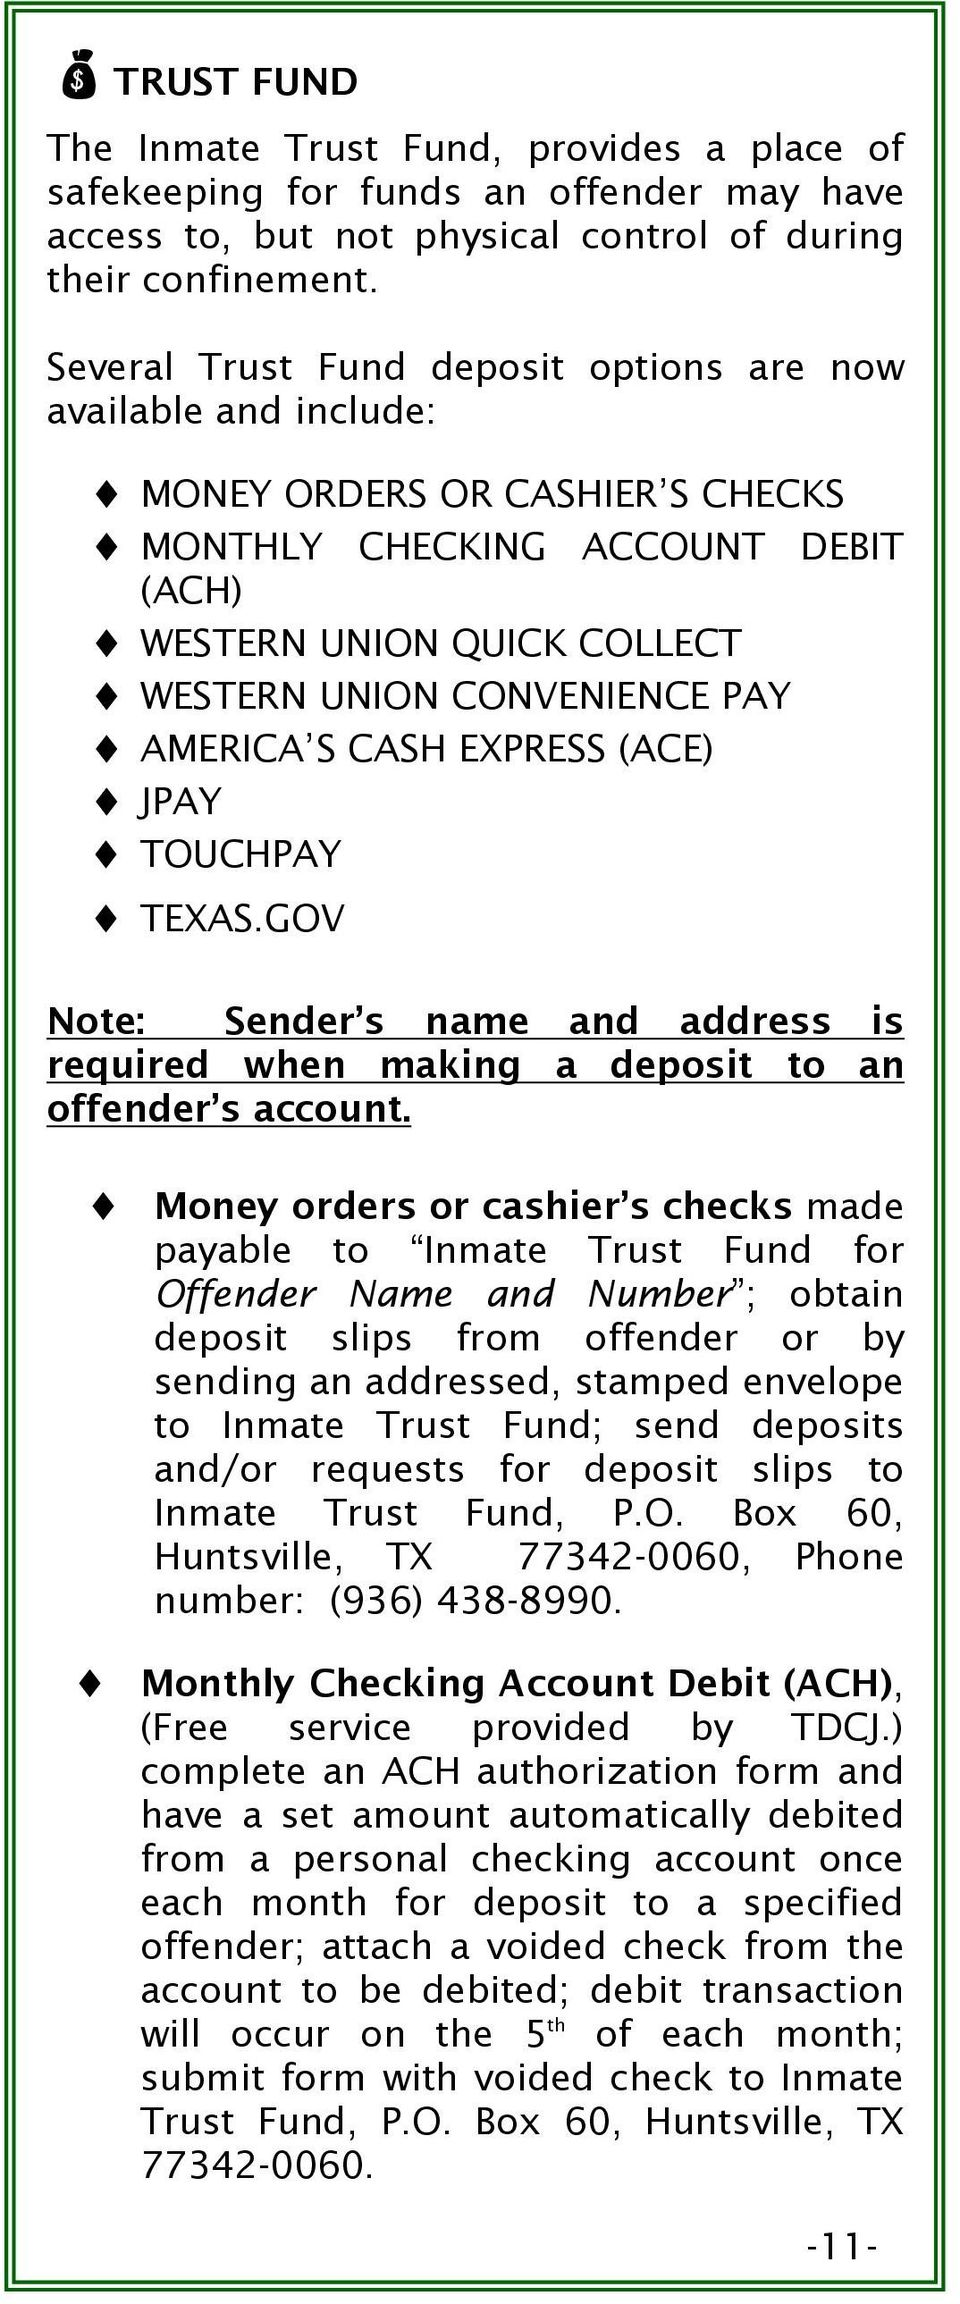 AMERICA S CASH EXPRESS (ACE) JPAY TOUCHPAY TEXAS.GOV Note: Sender s name and address is required when making a deposit to an offender s account.